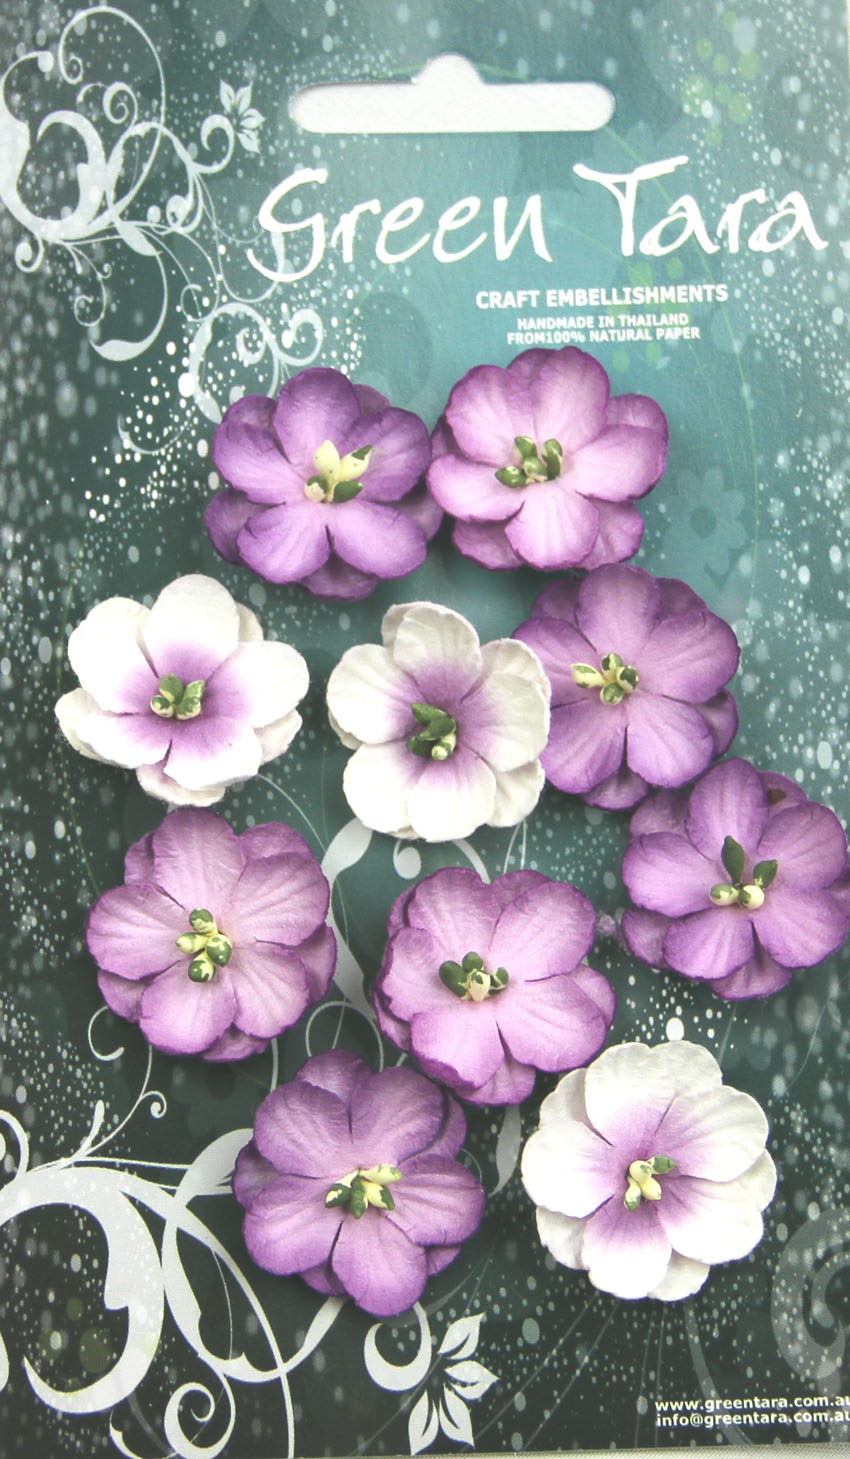 Pack 10 Cherry Blossoms, Lavender Tones 28mm